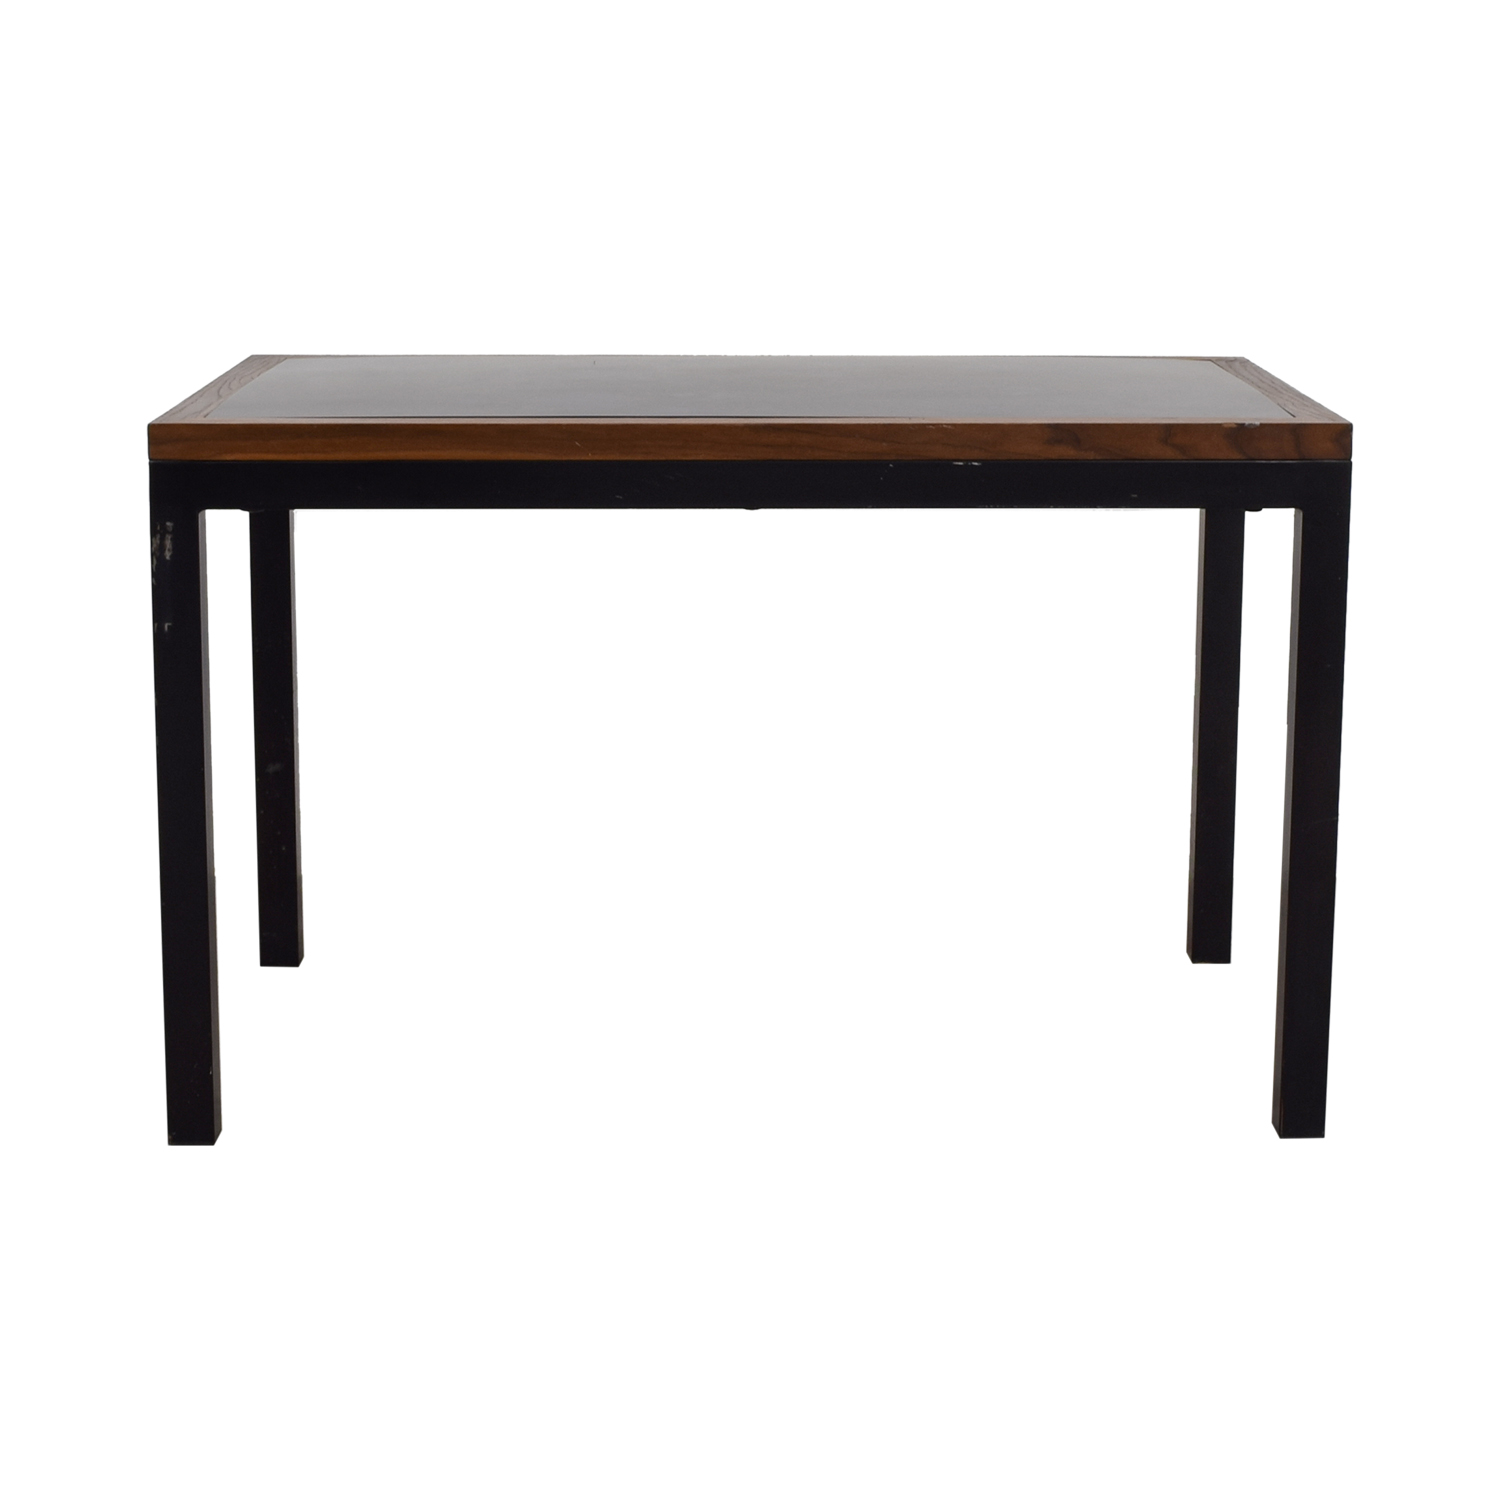 shop Black Wood and Metal Table online